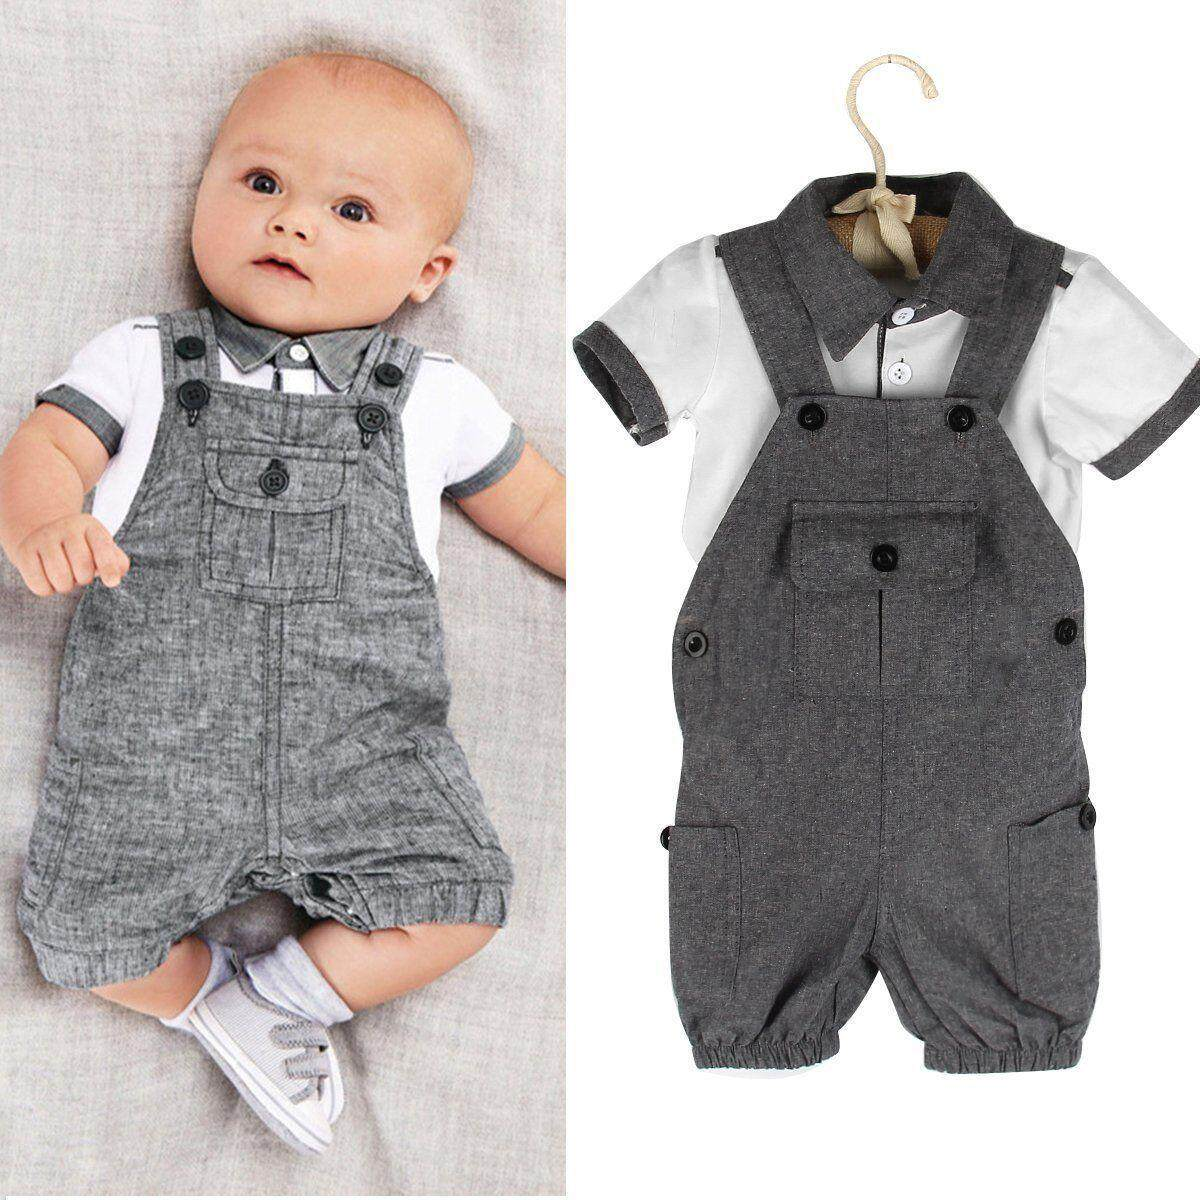 3f03db7976e 2pcs Toddler Infant Newborn Kids Baby Boy Clothes T-shirt Tops+Pants Outfits  Set